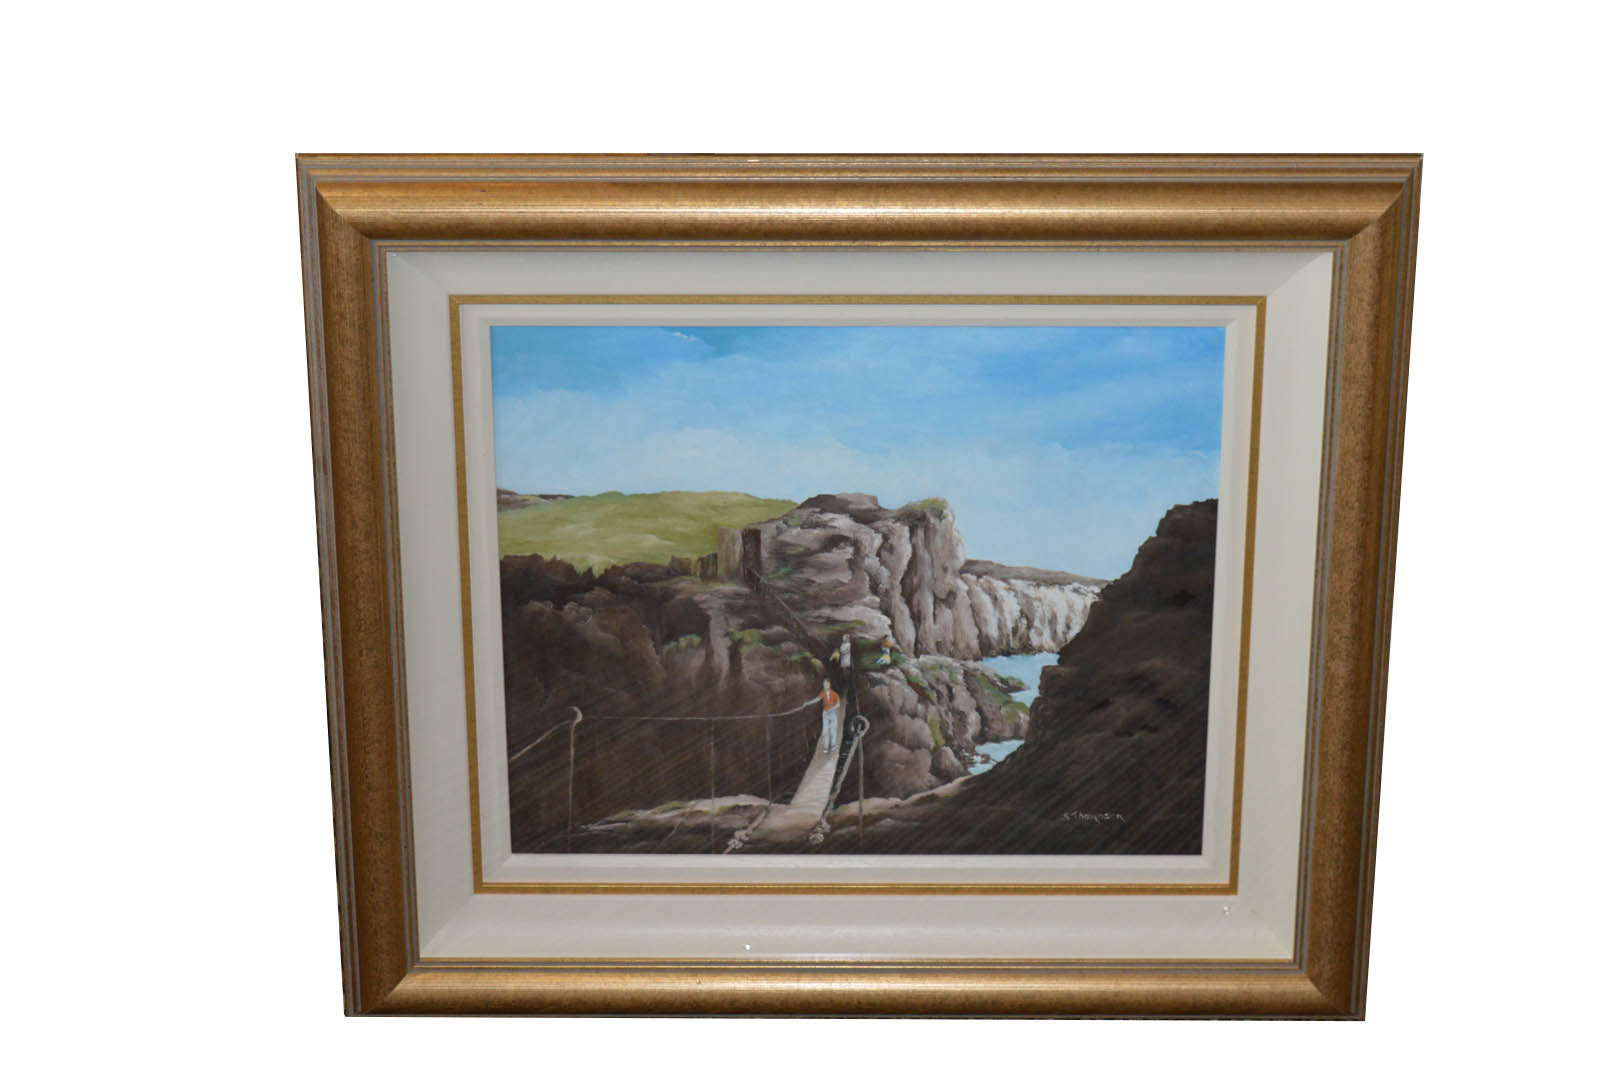 Lot 663 - An Oil Painting 'The Rope Bridge' - S Thompson